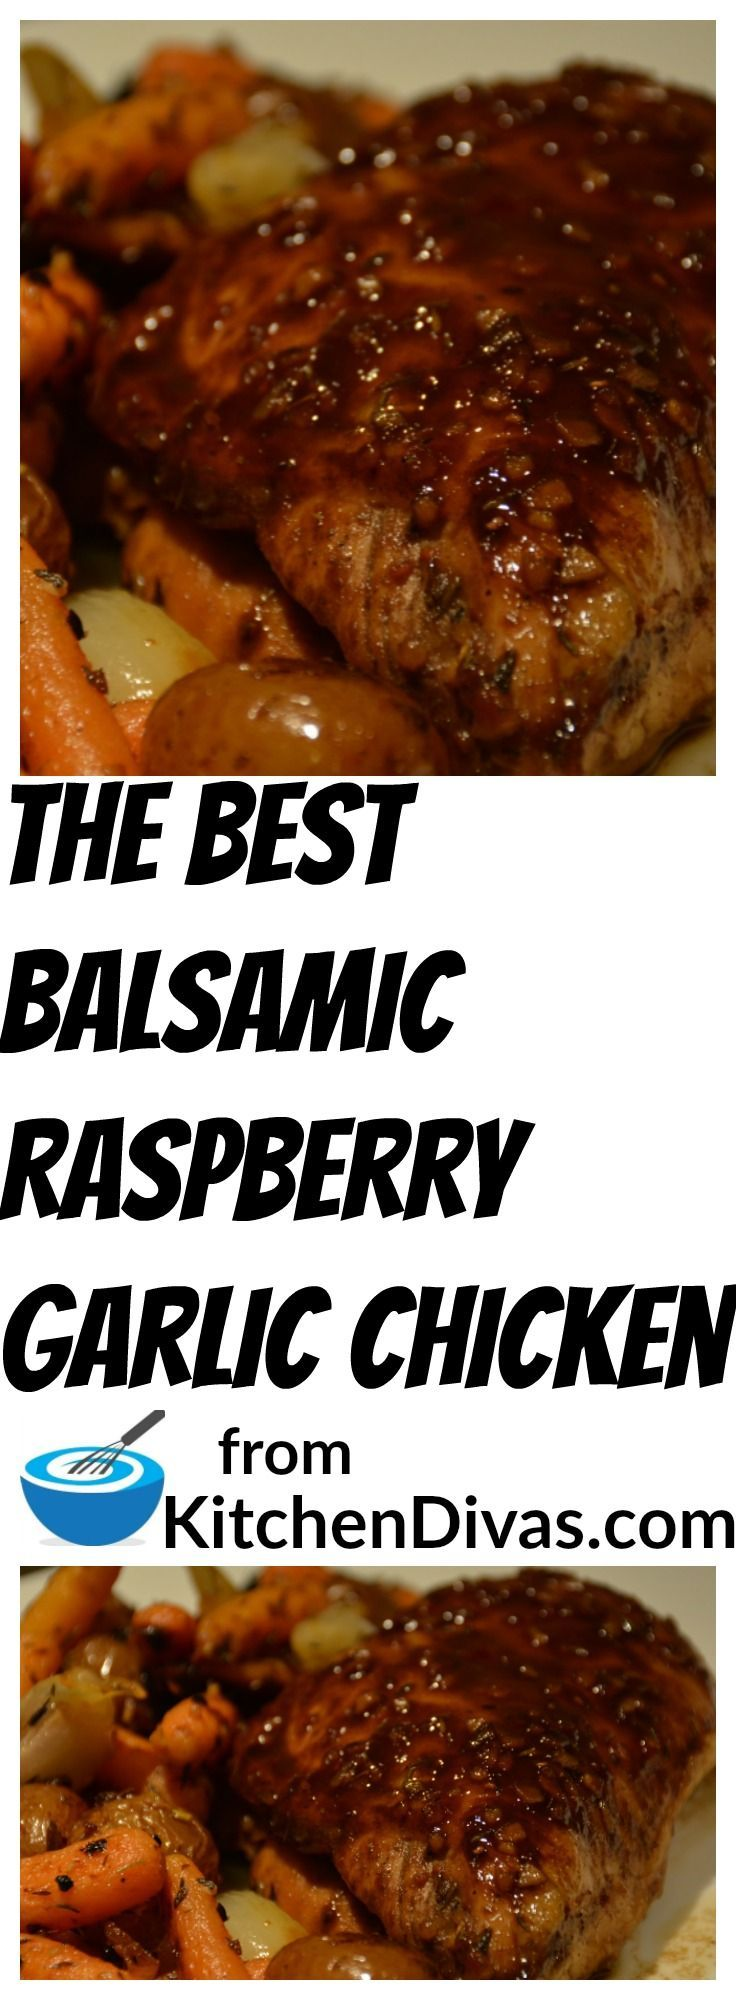 Balsamic Raspberry Garlic Chicken - Kitchen Divas